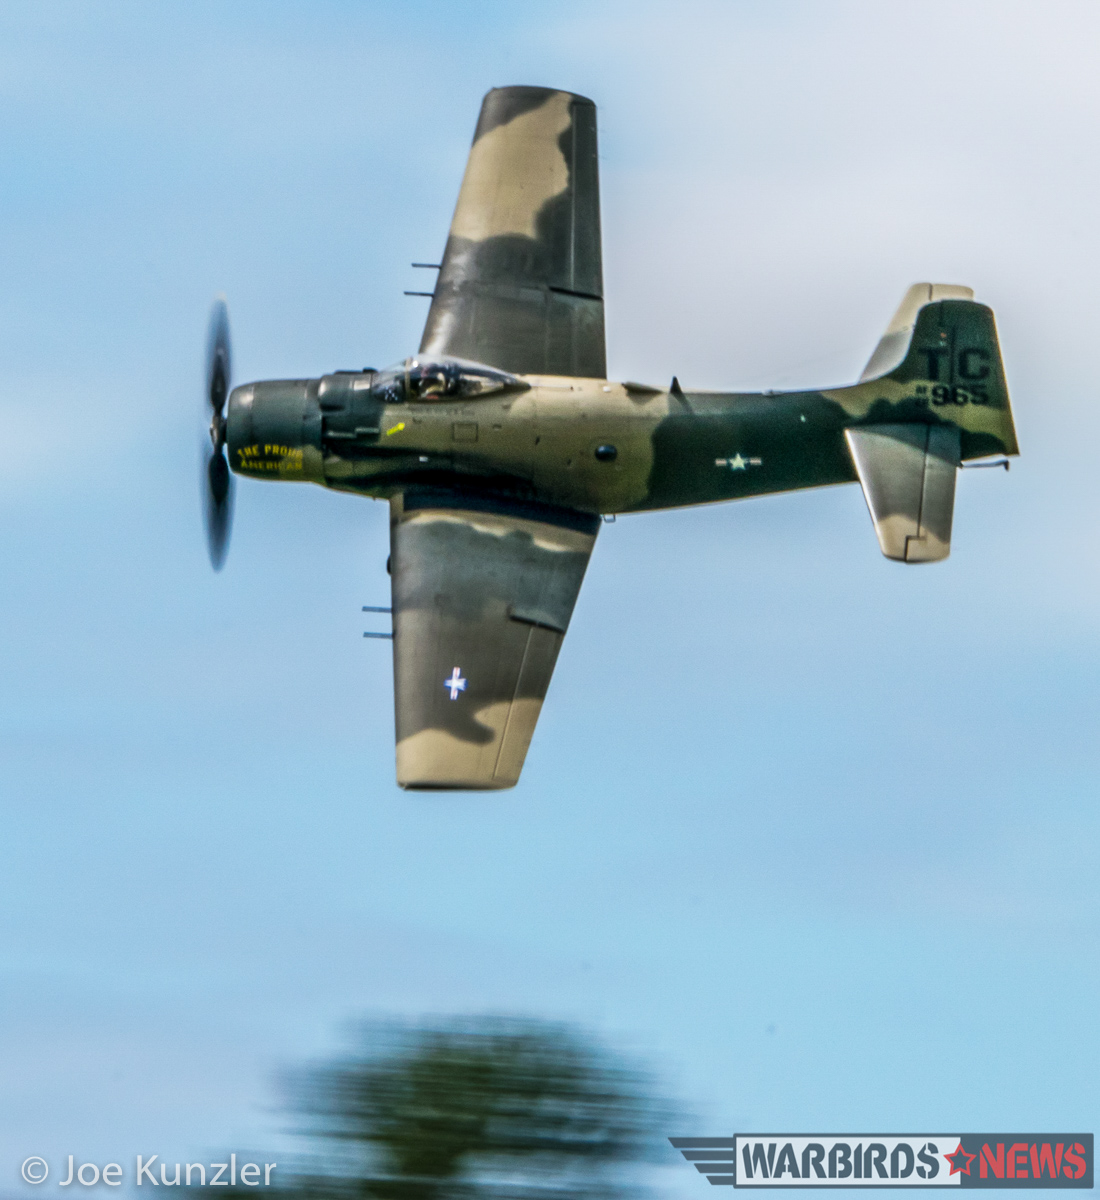 The Skyraider screaming over the tree tops. (photo by Joe Kunzler)